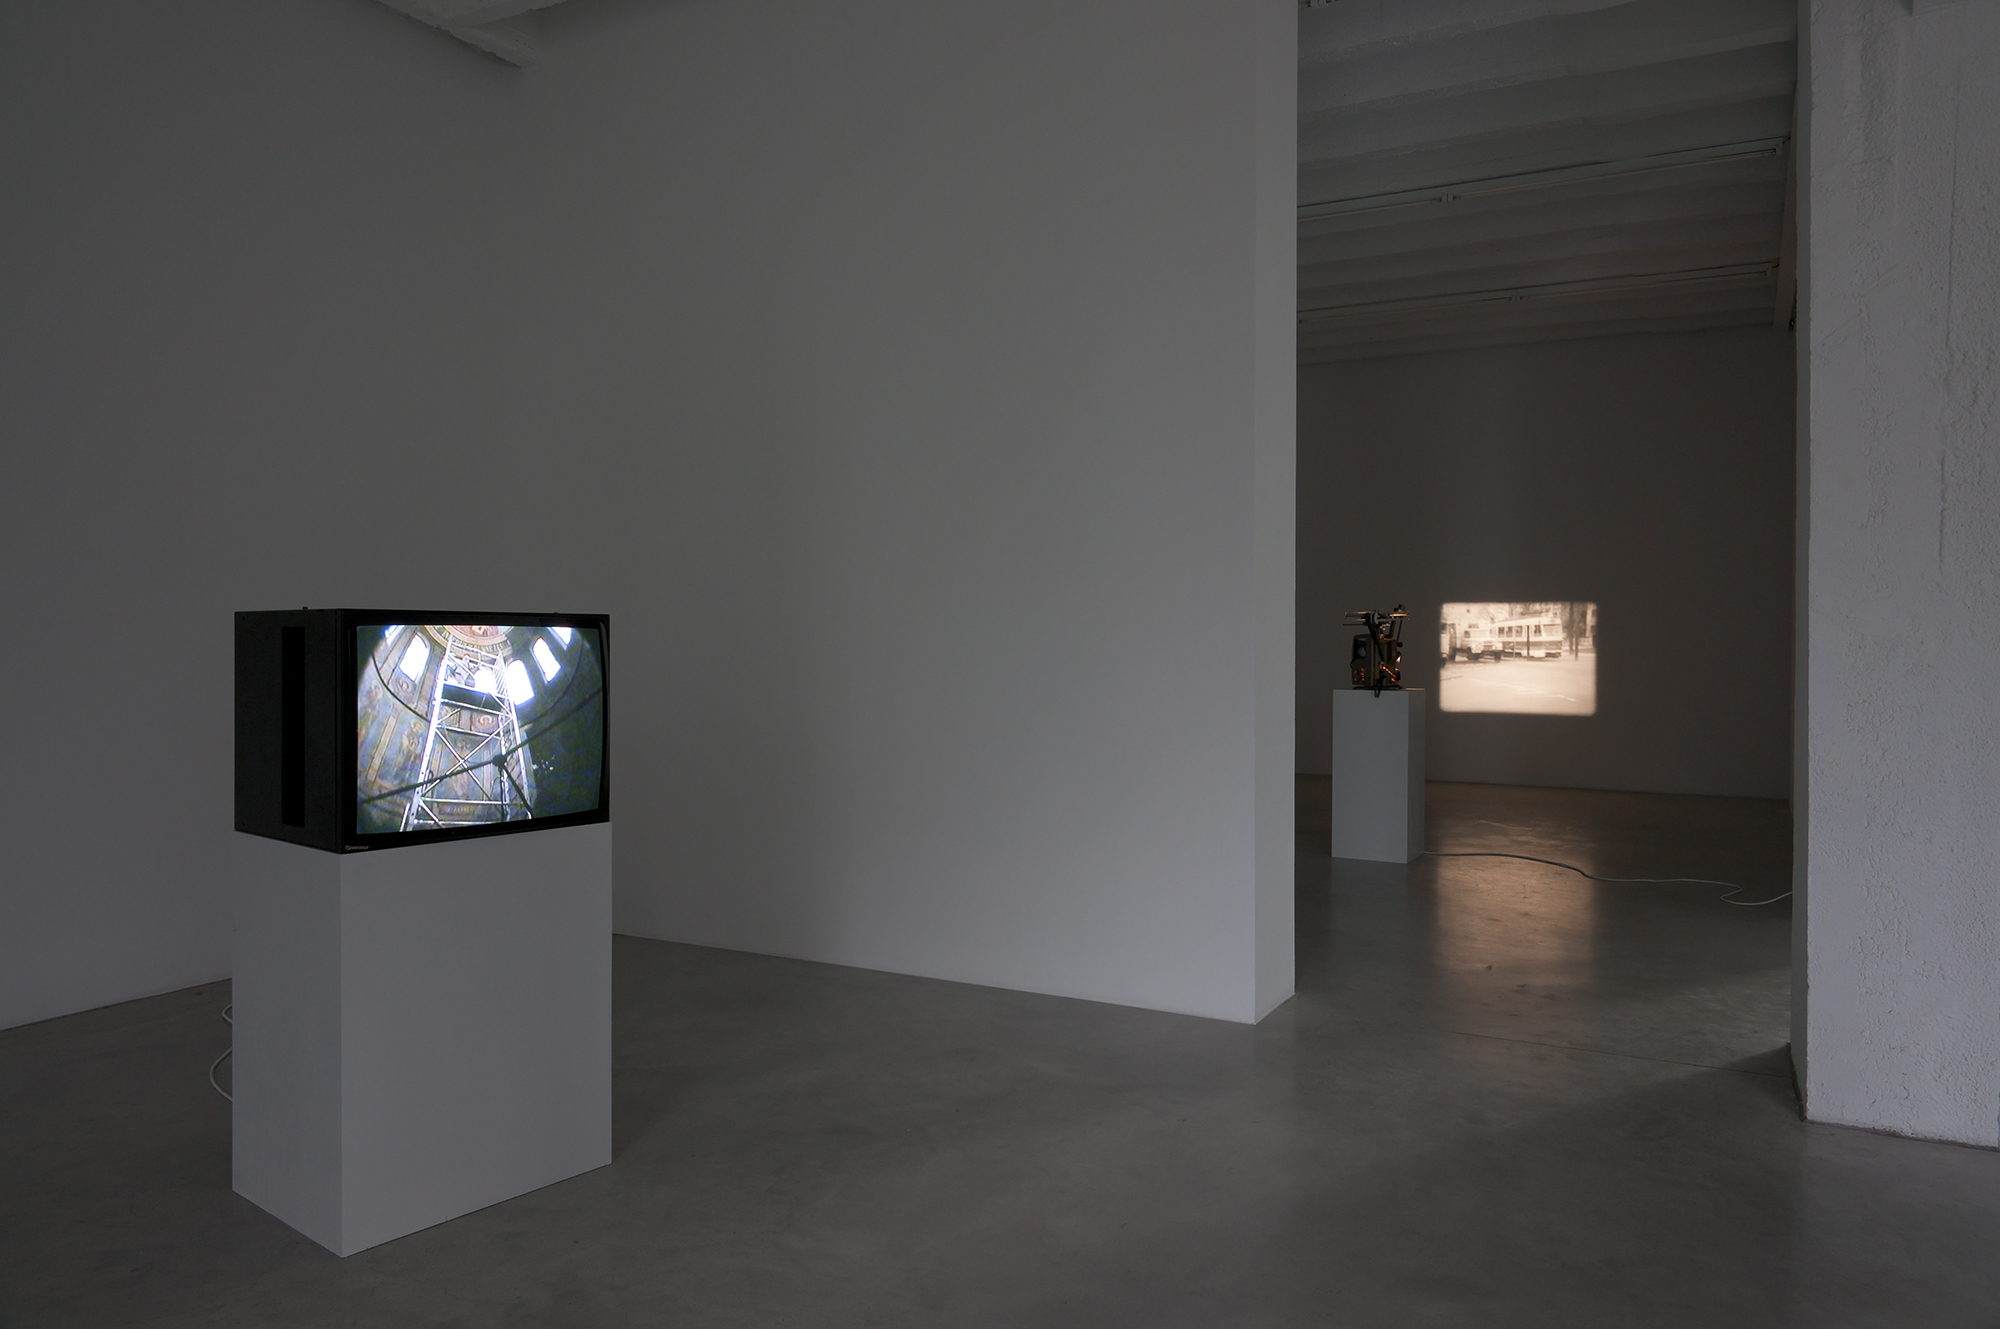 Exhibition view at Galerija Gregor Podnar, Berlin, 2010.